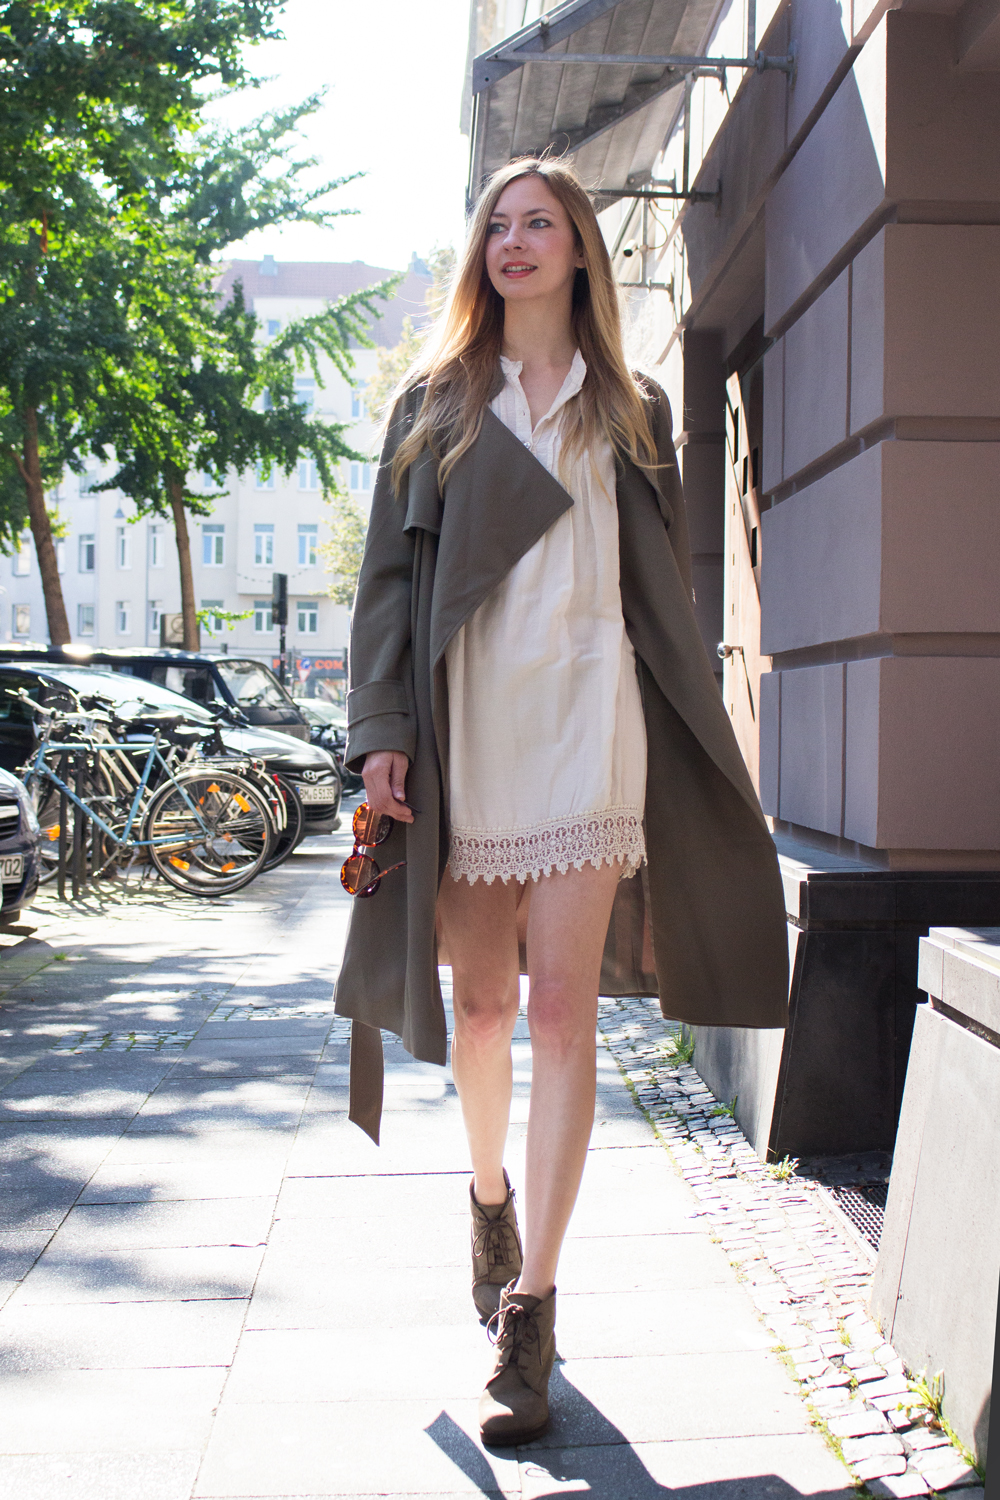 boho dress & trench coat